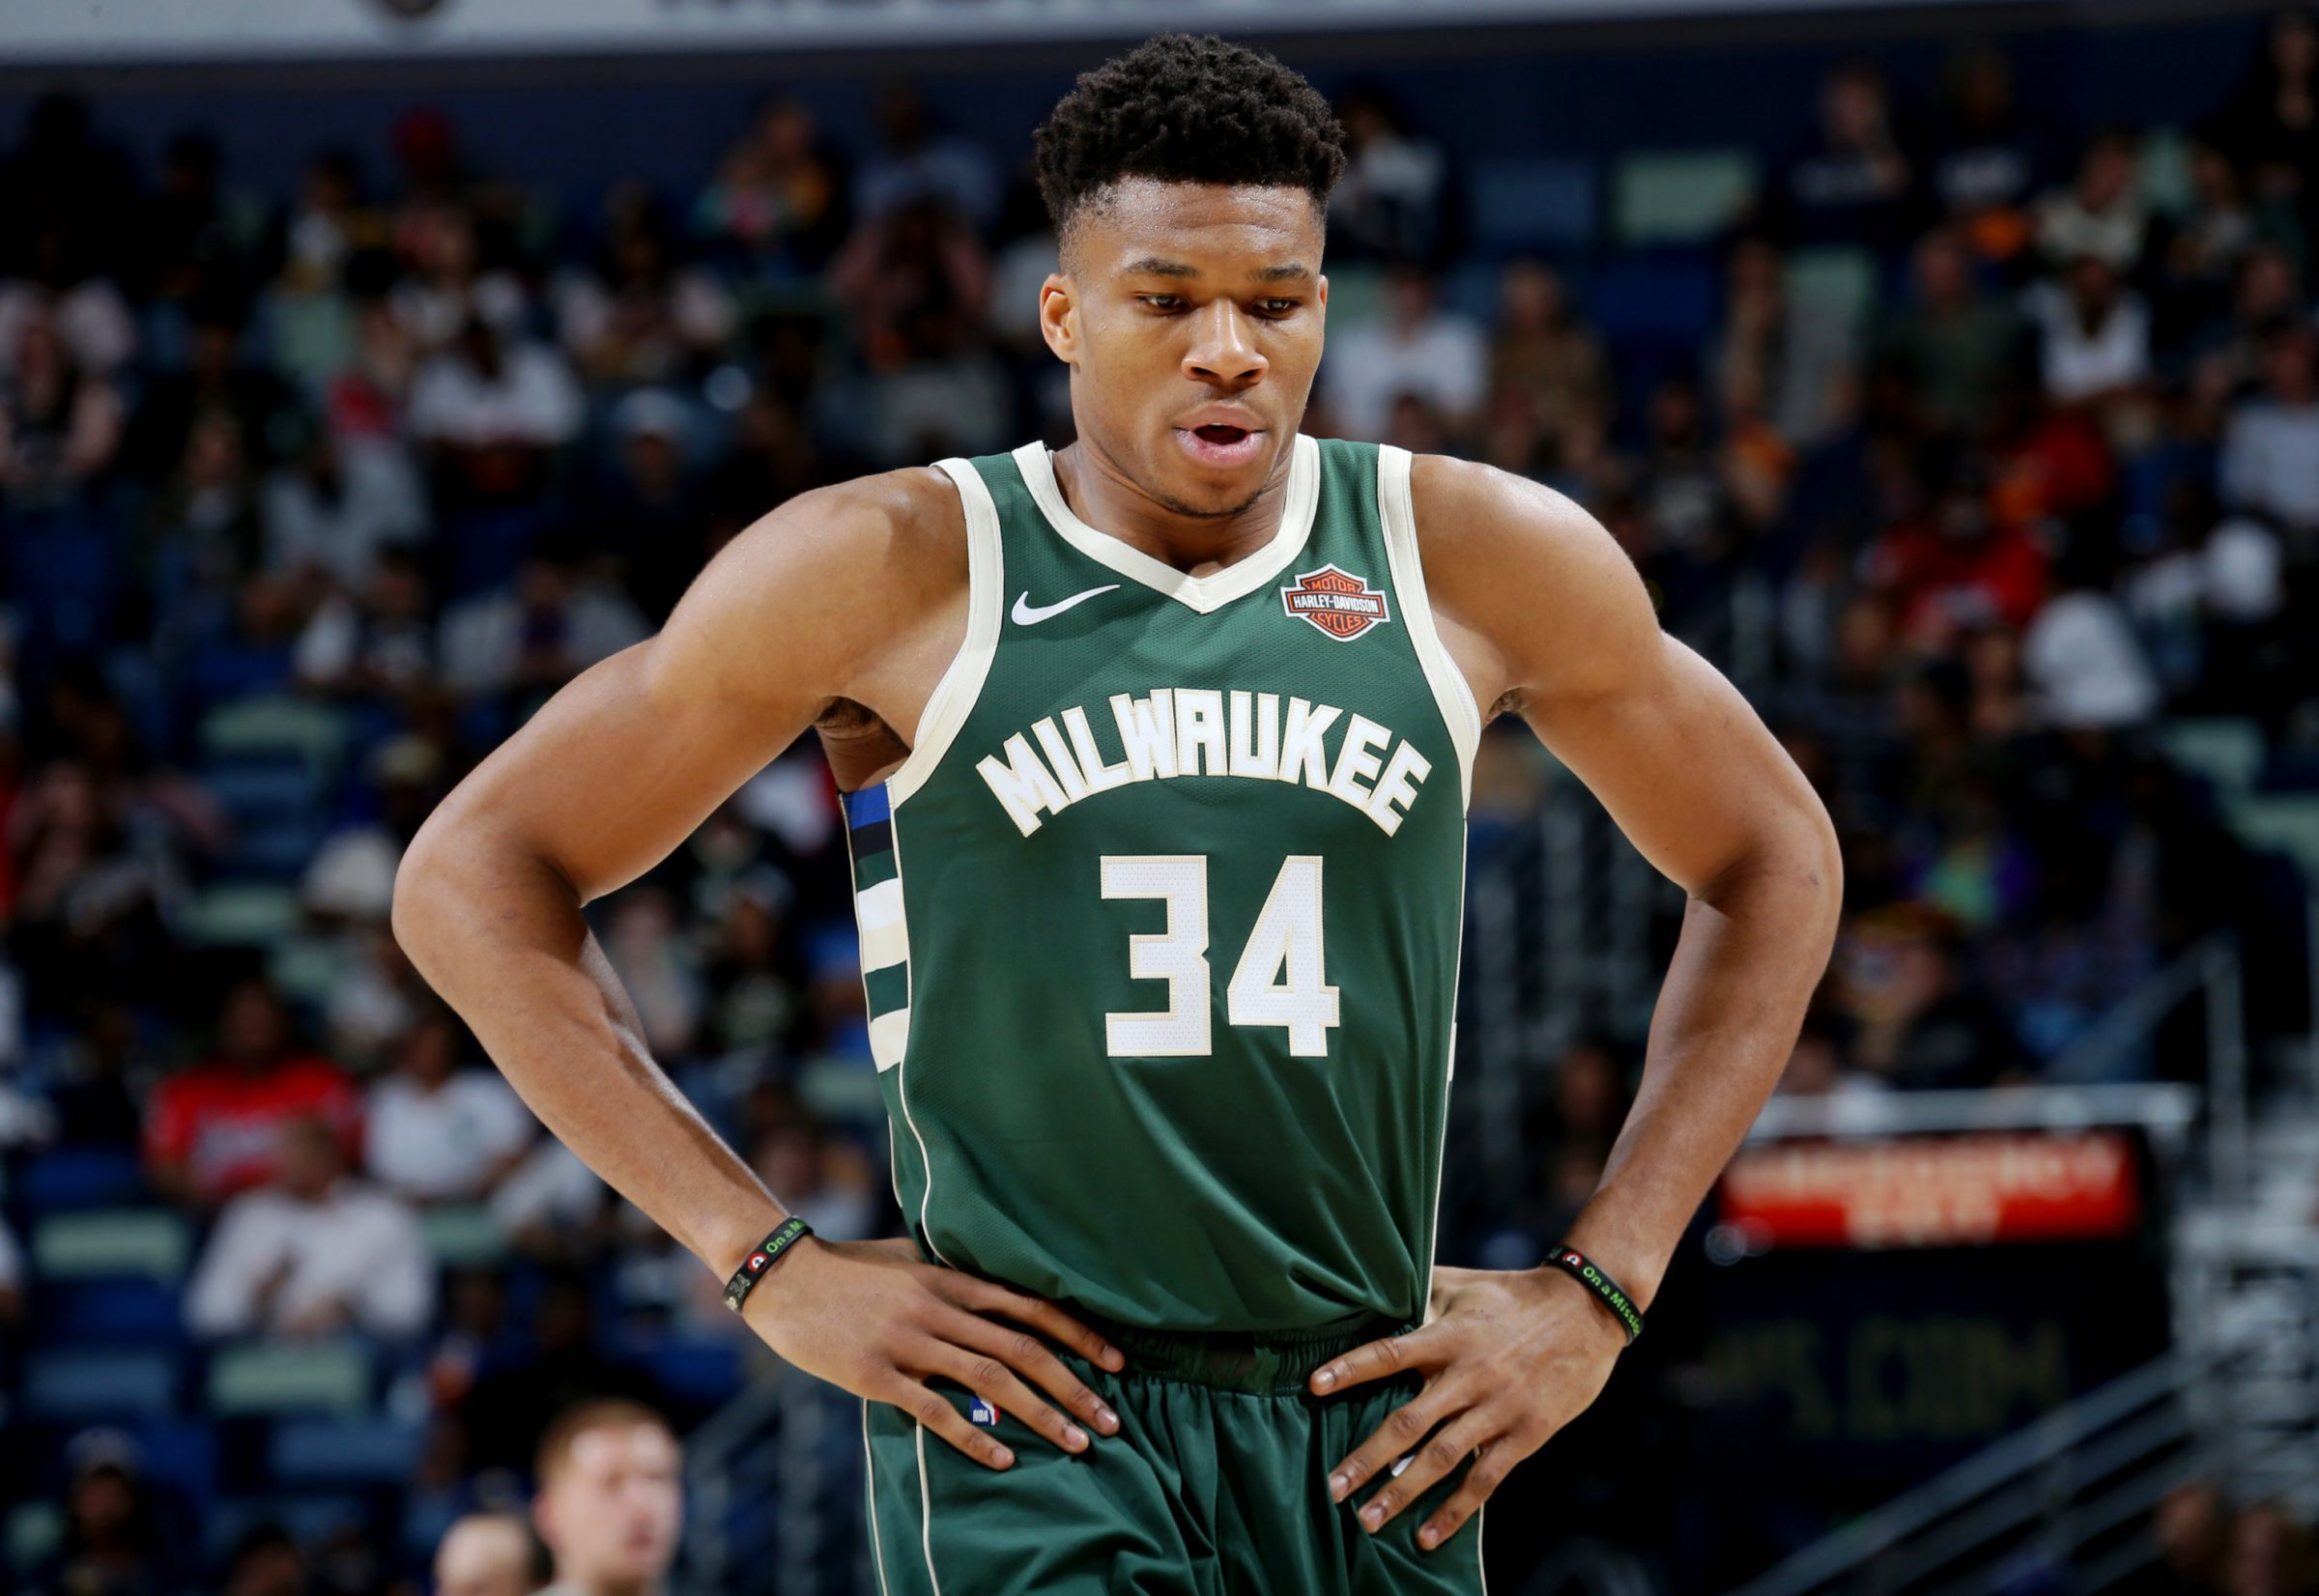 Antetokounmpo, the reigning Kia NBA MVP,